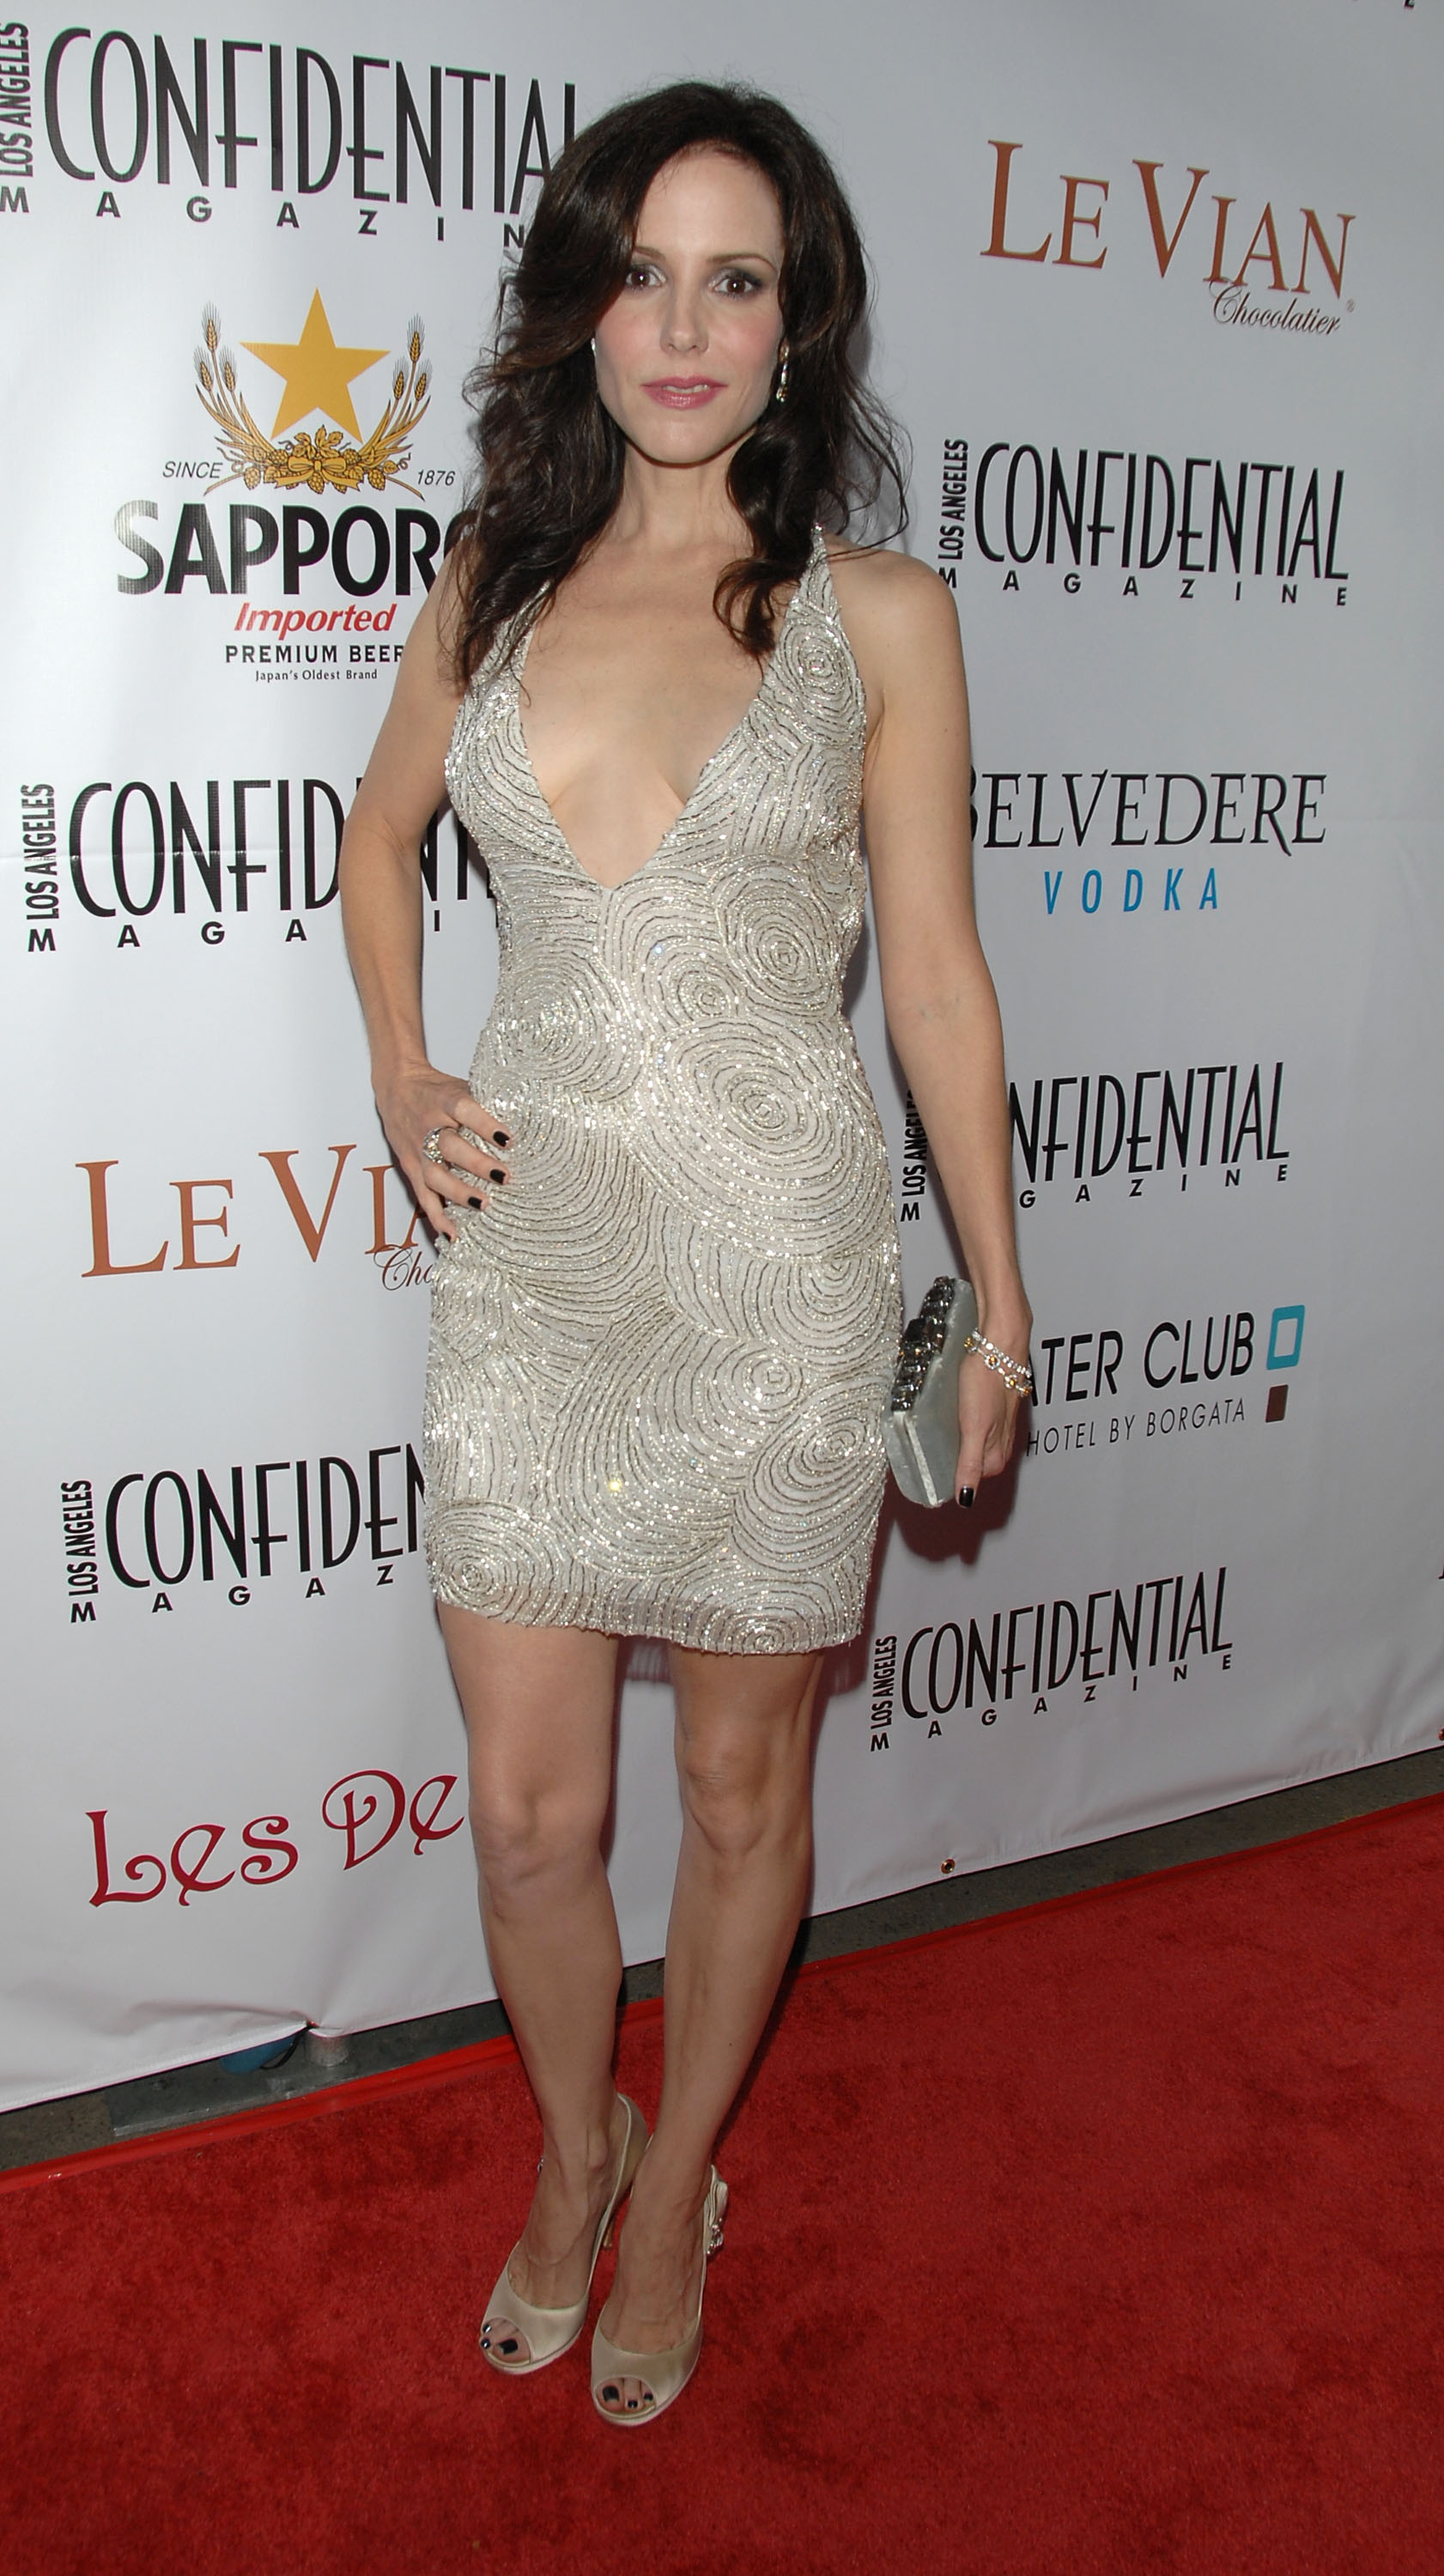 91825_Celebutopia-Mary-Louise_Parker-Los_Angeles_Confidential_Magazine48s_Pre-Emmy_Party-04_122_452lo.jpg